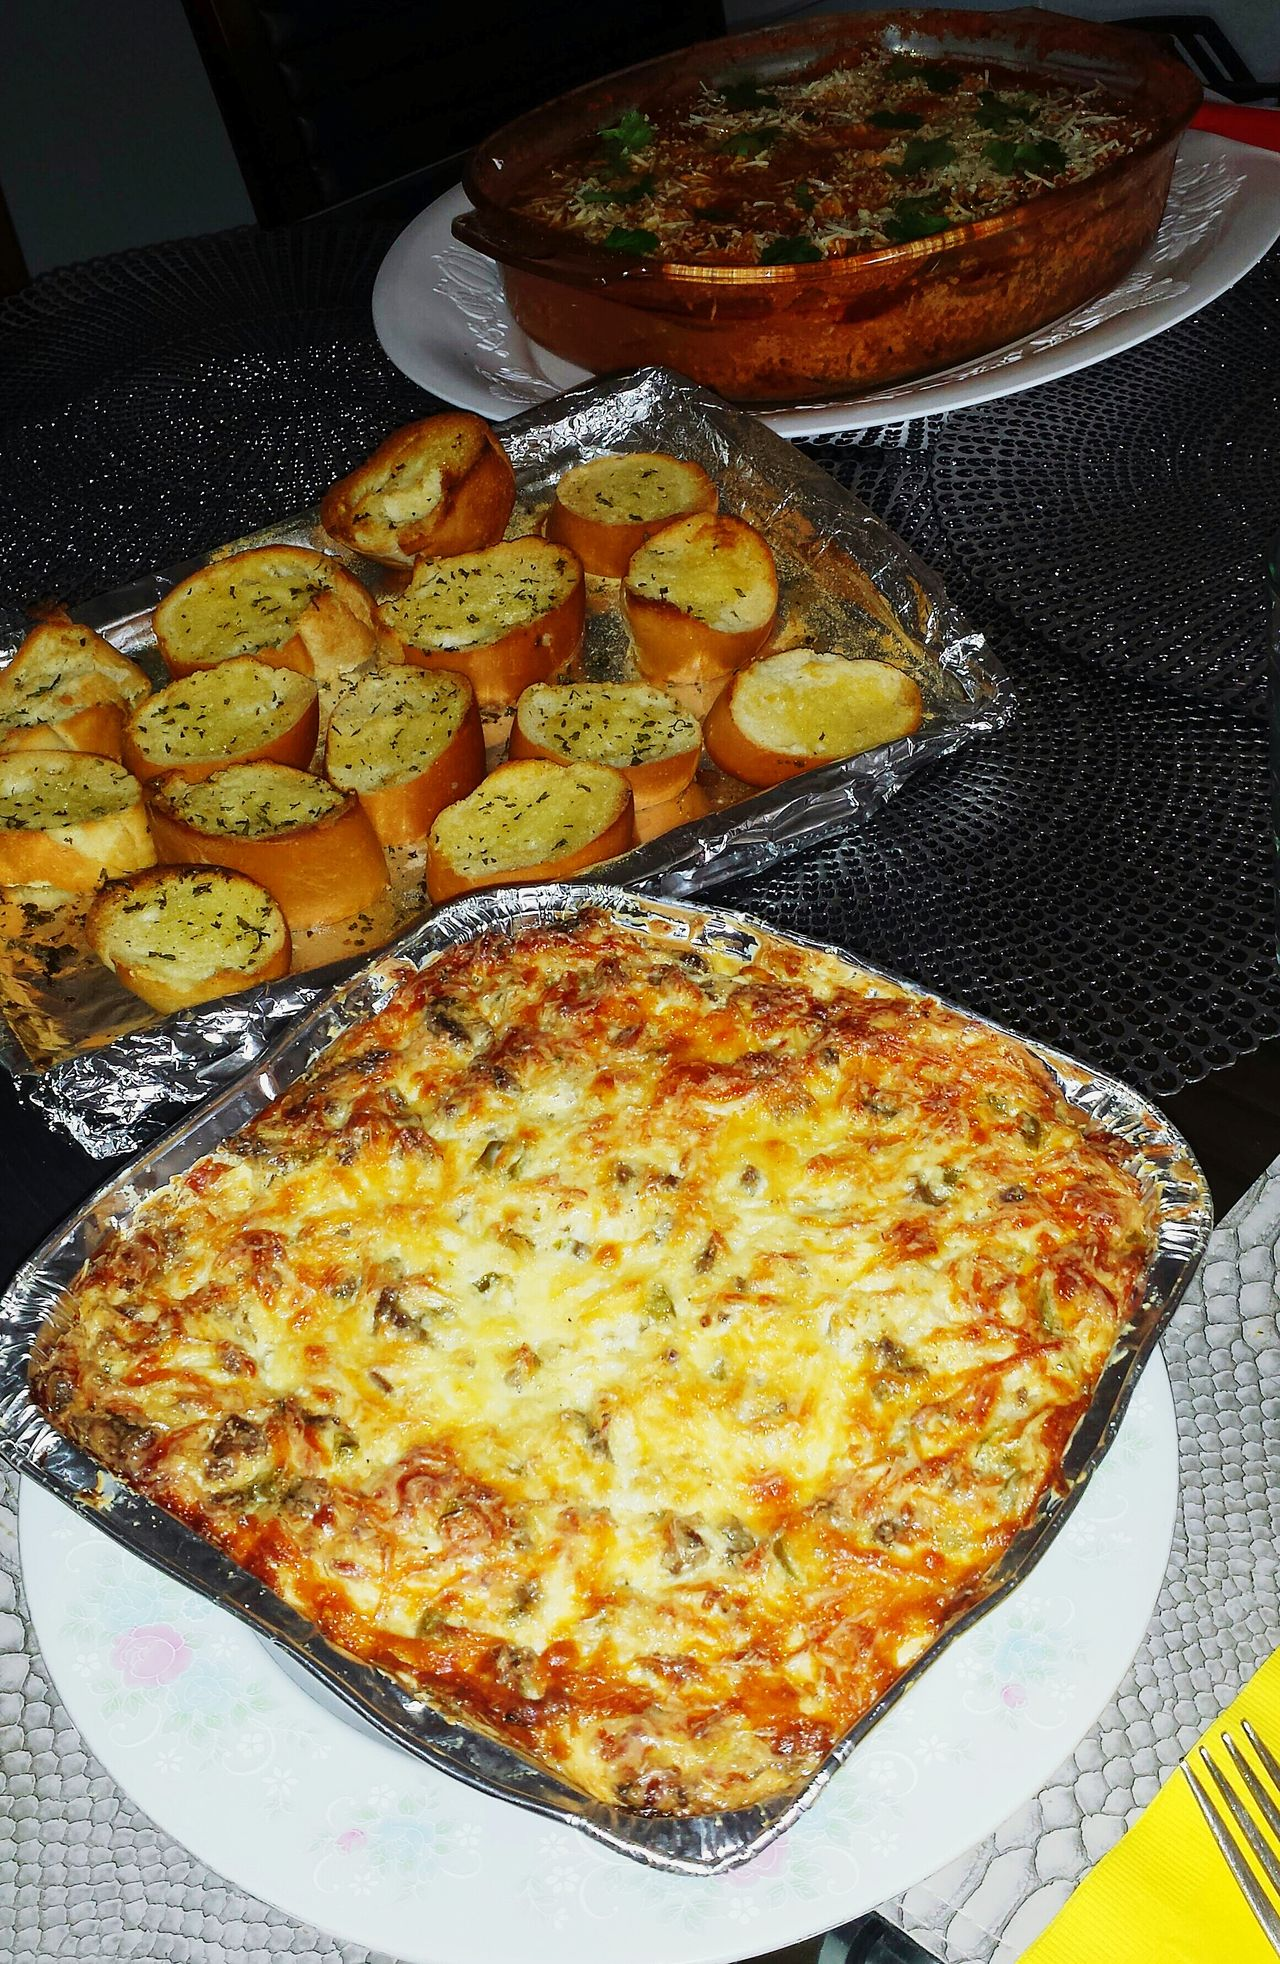 Foodphotography Homemade Food Open Edit Eating With Friends Original Experiences Foodporn Delicious Enjoying A Meal Relaxing Time Want Some? No Diet Light And Shadow Quiche Bread Pasta Foodlover